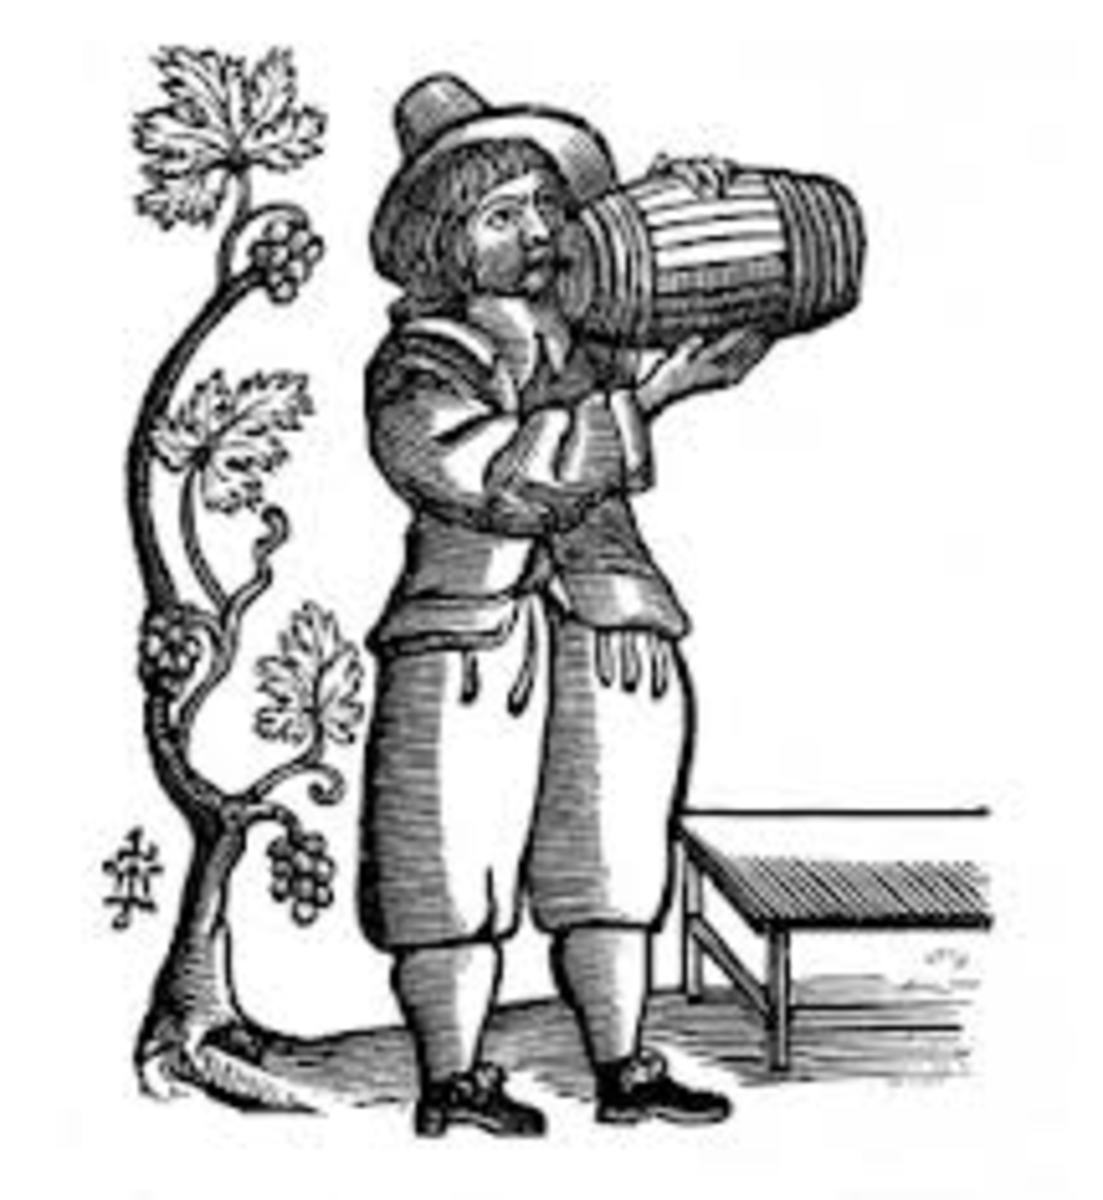 John Barleycorn -- English folk legend of the malts